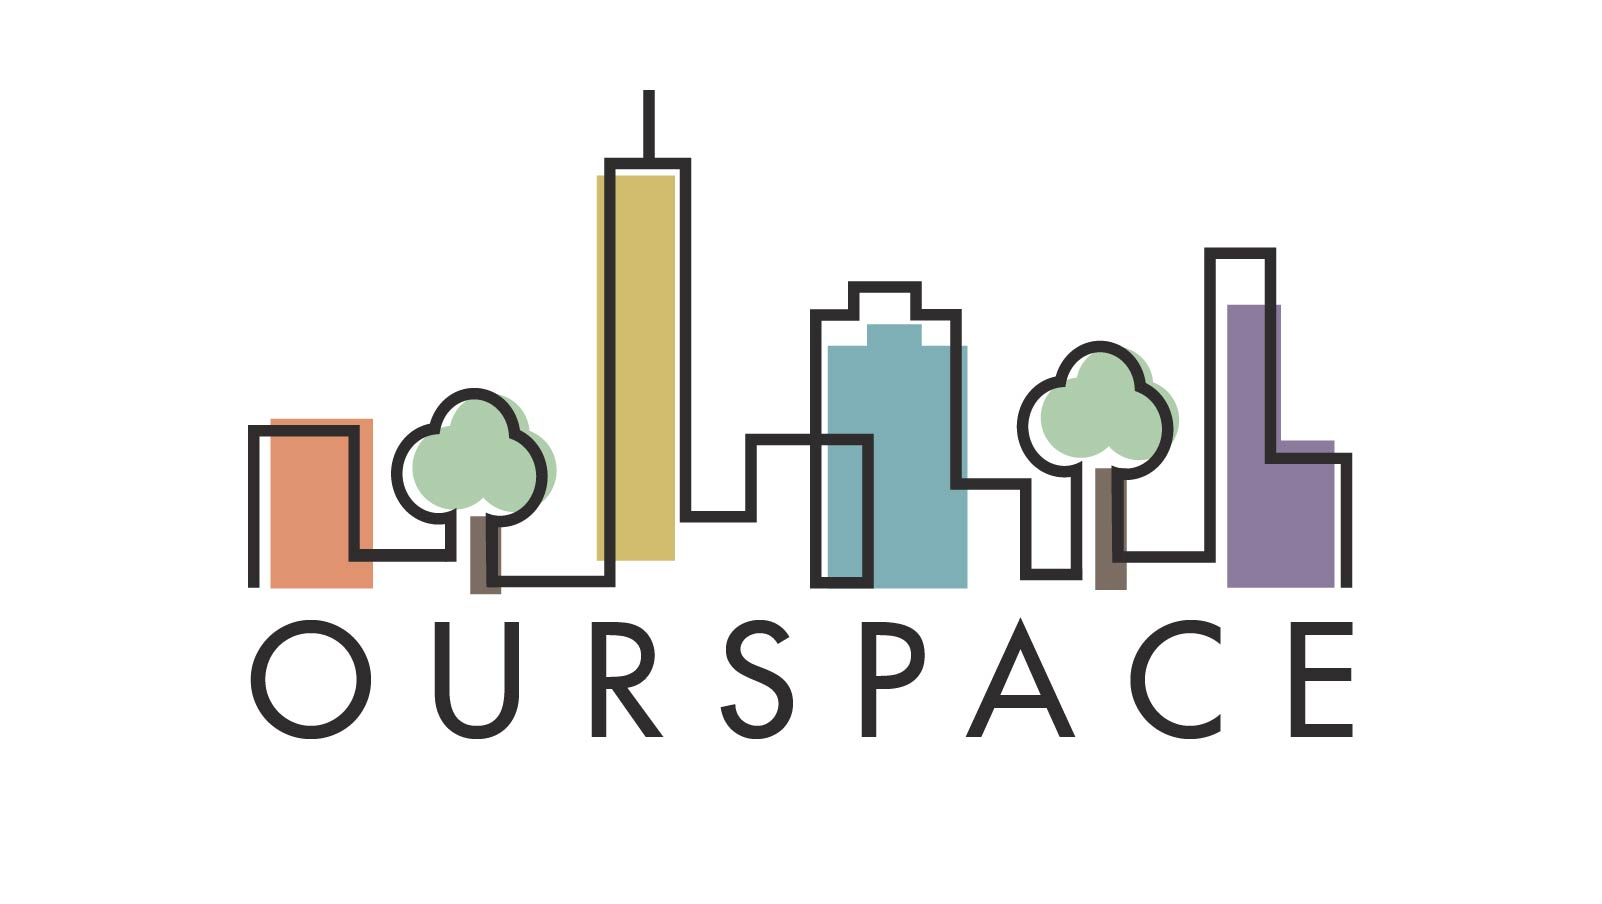 OURSPACE by husckdesigns  a perfect logo for Real Estate & Mortgage